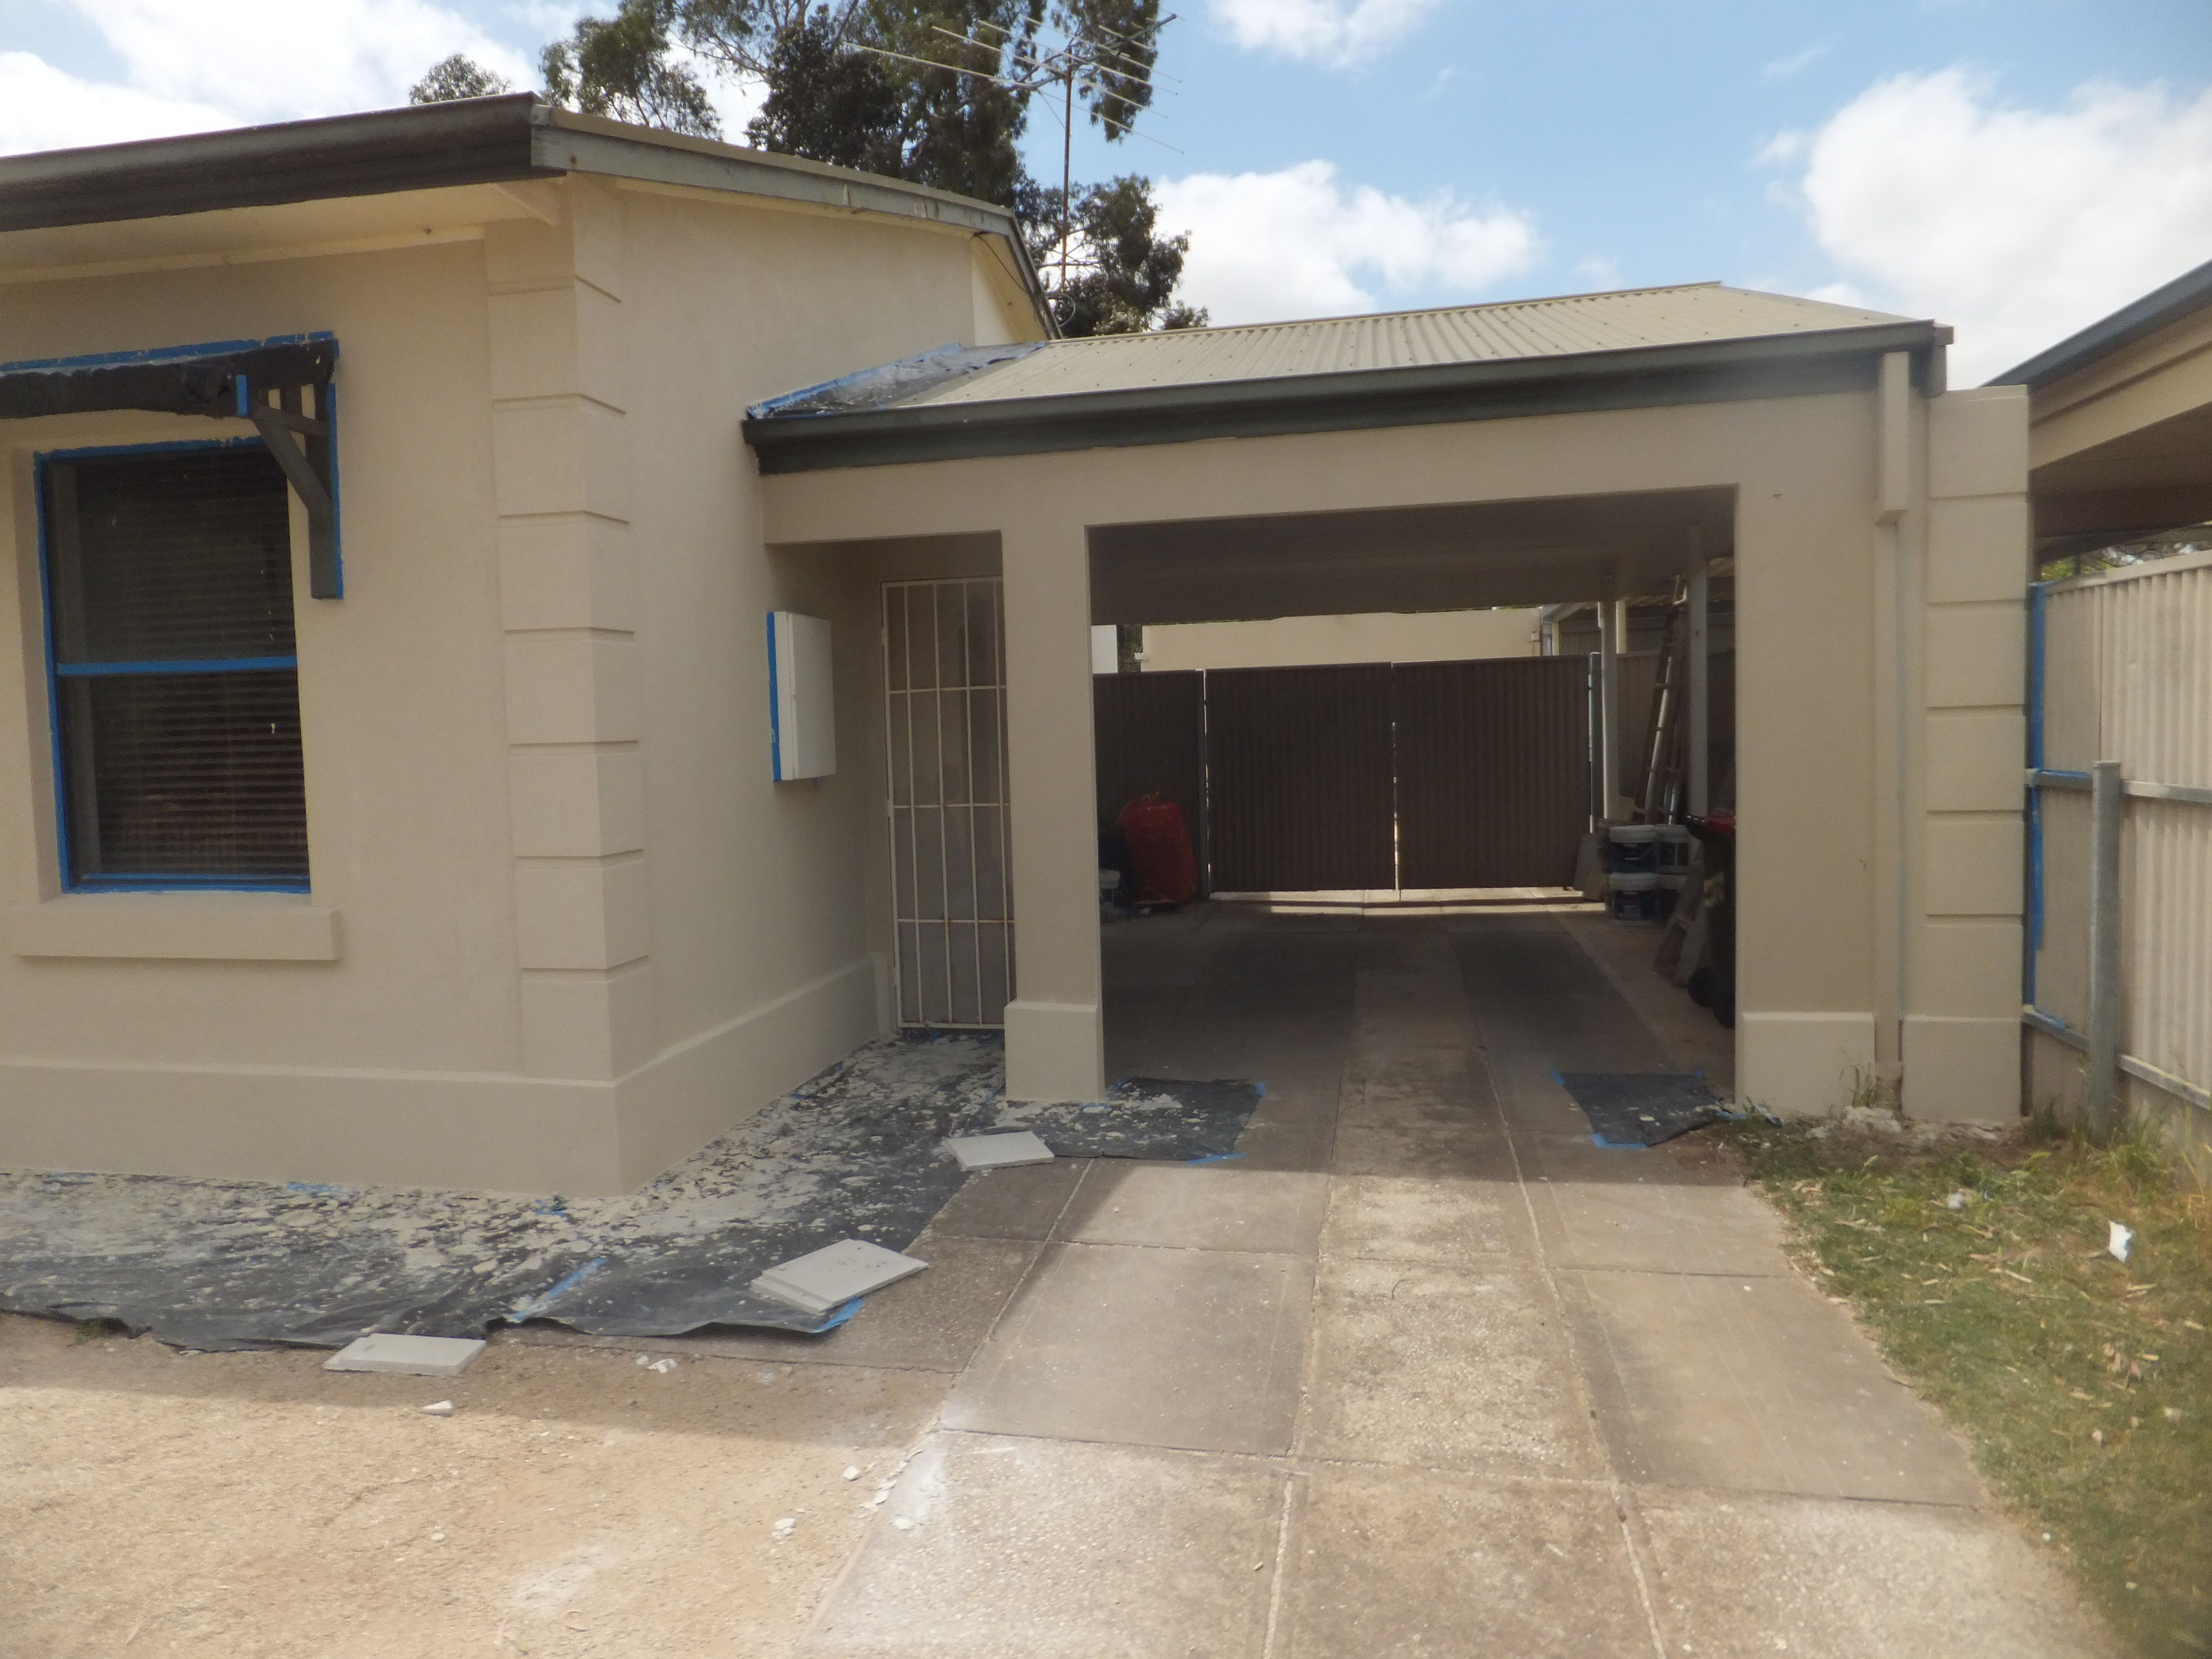 When you render the carport or garage you make your house